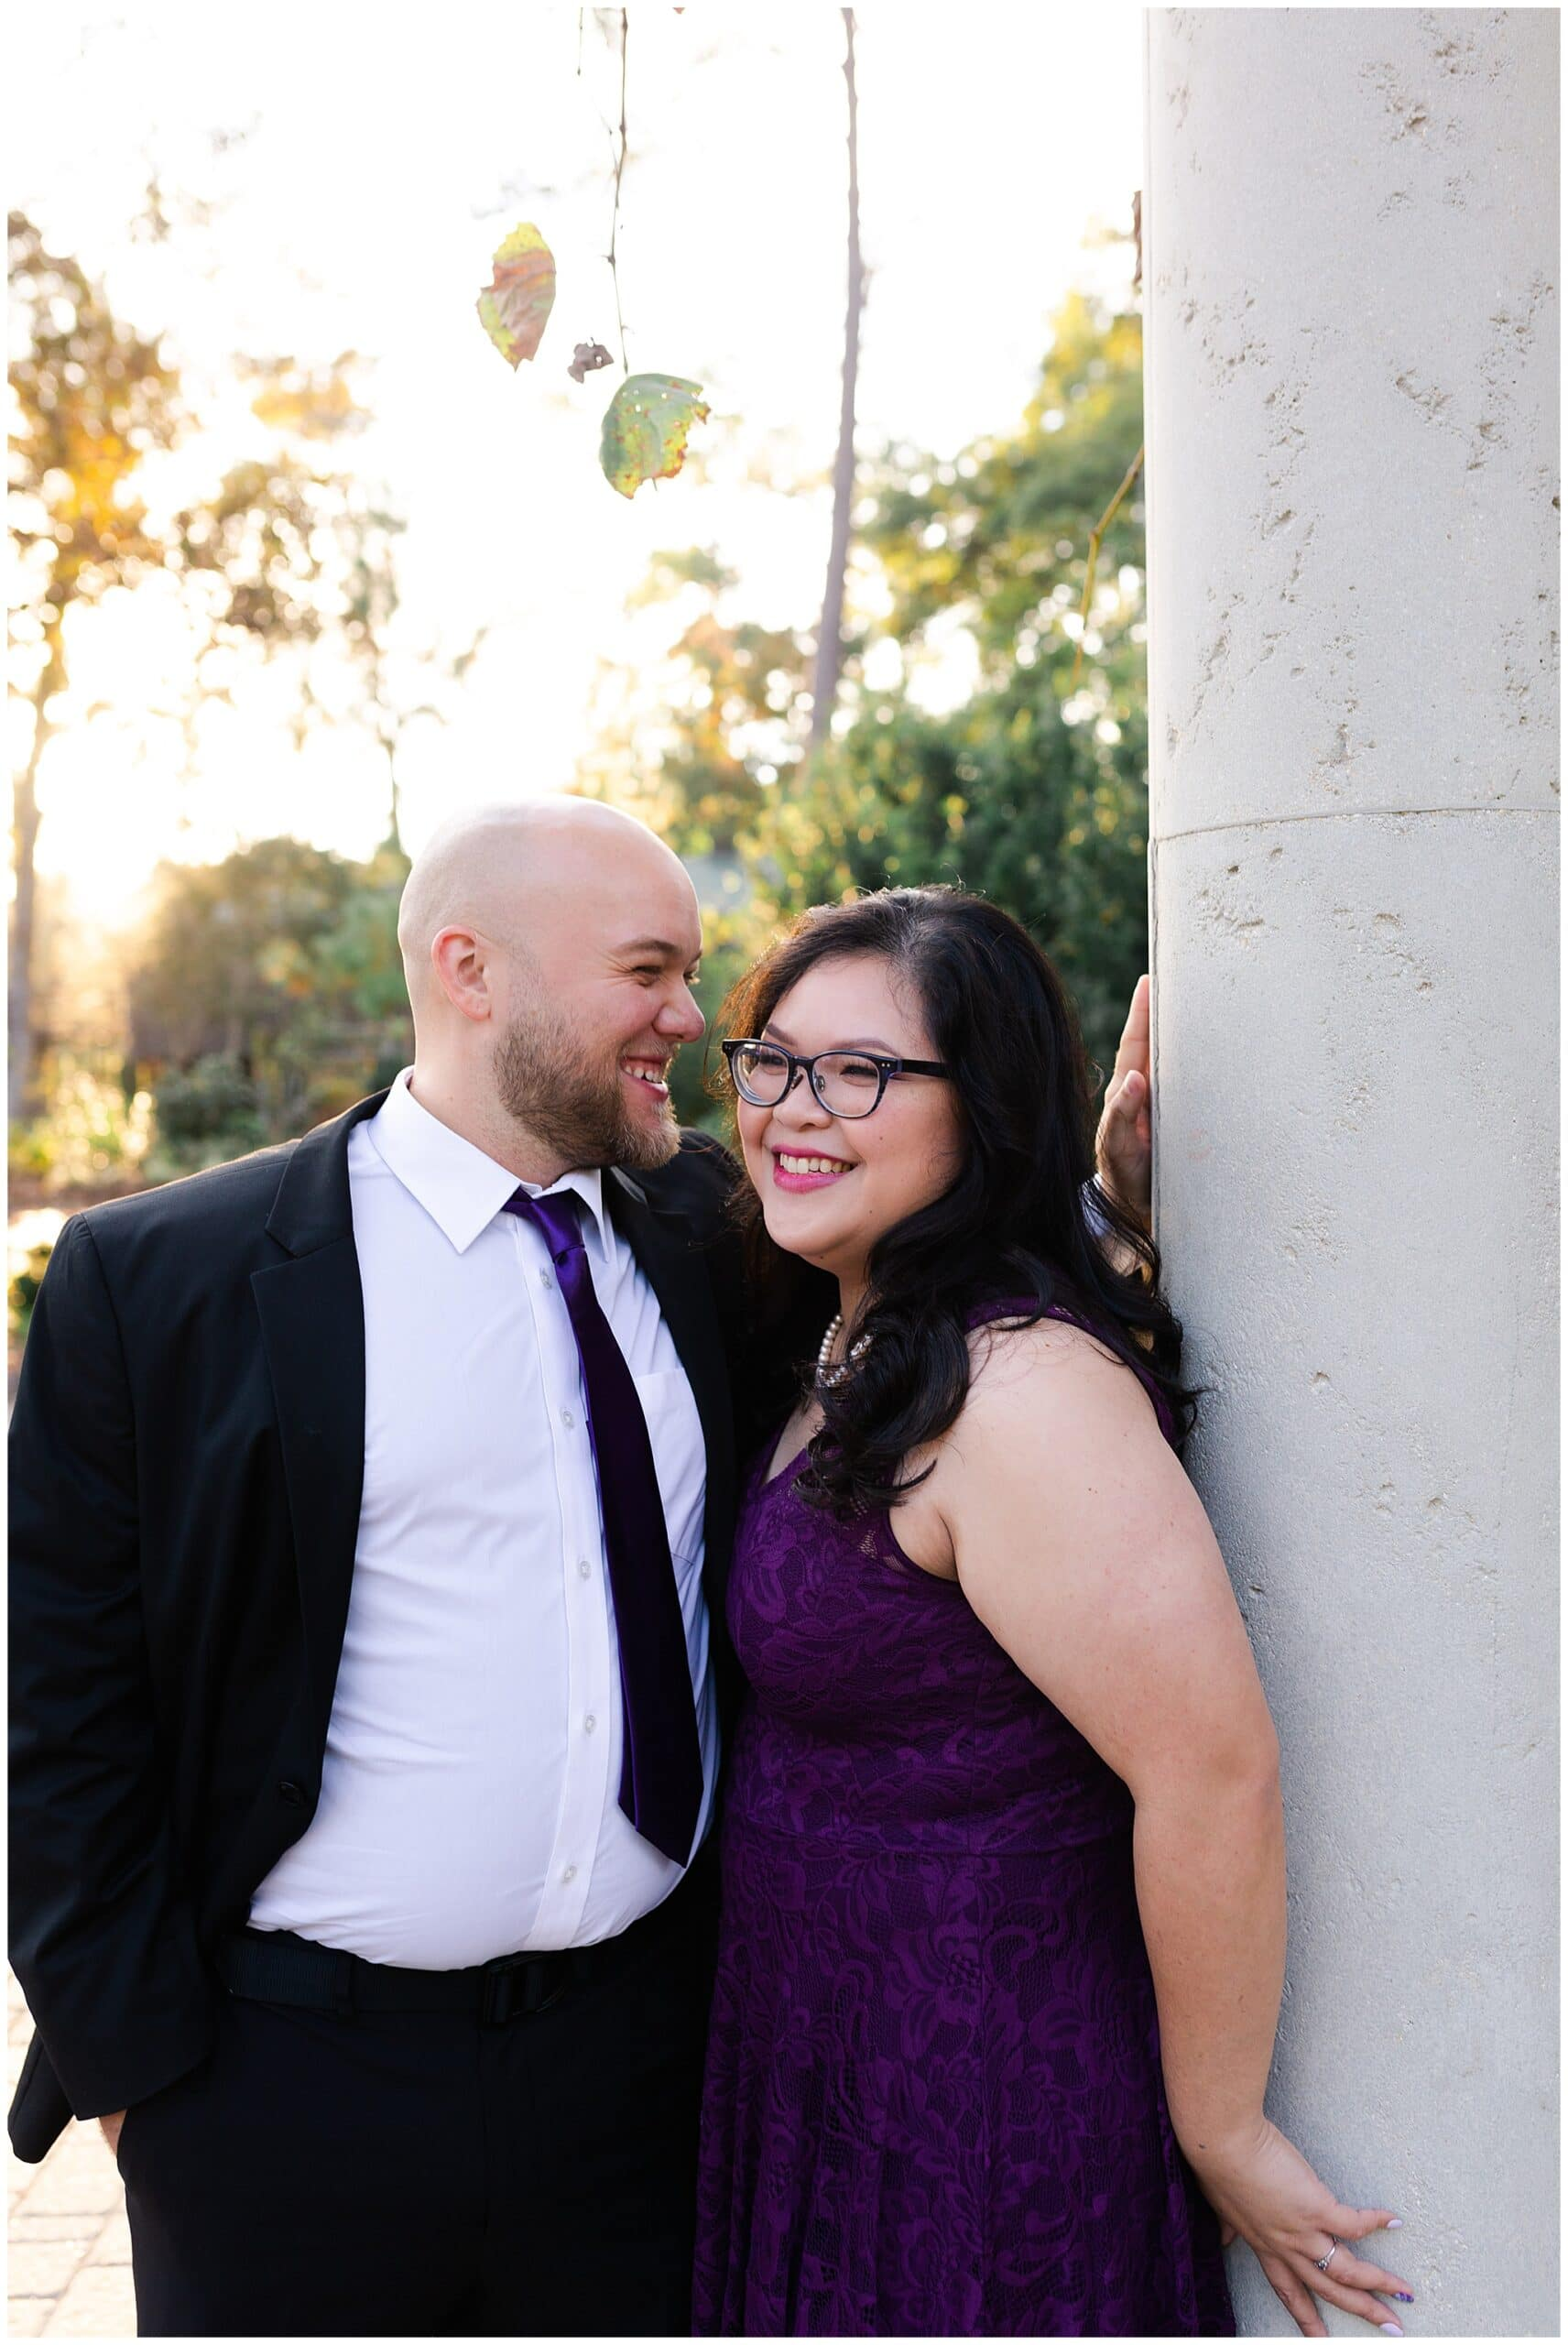 Adorable Engagement Session at Mercer Botanic Gardens | Grace + Chase